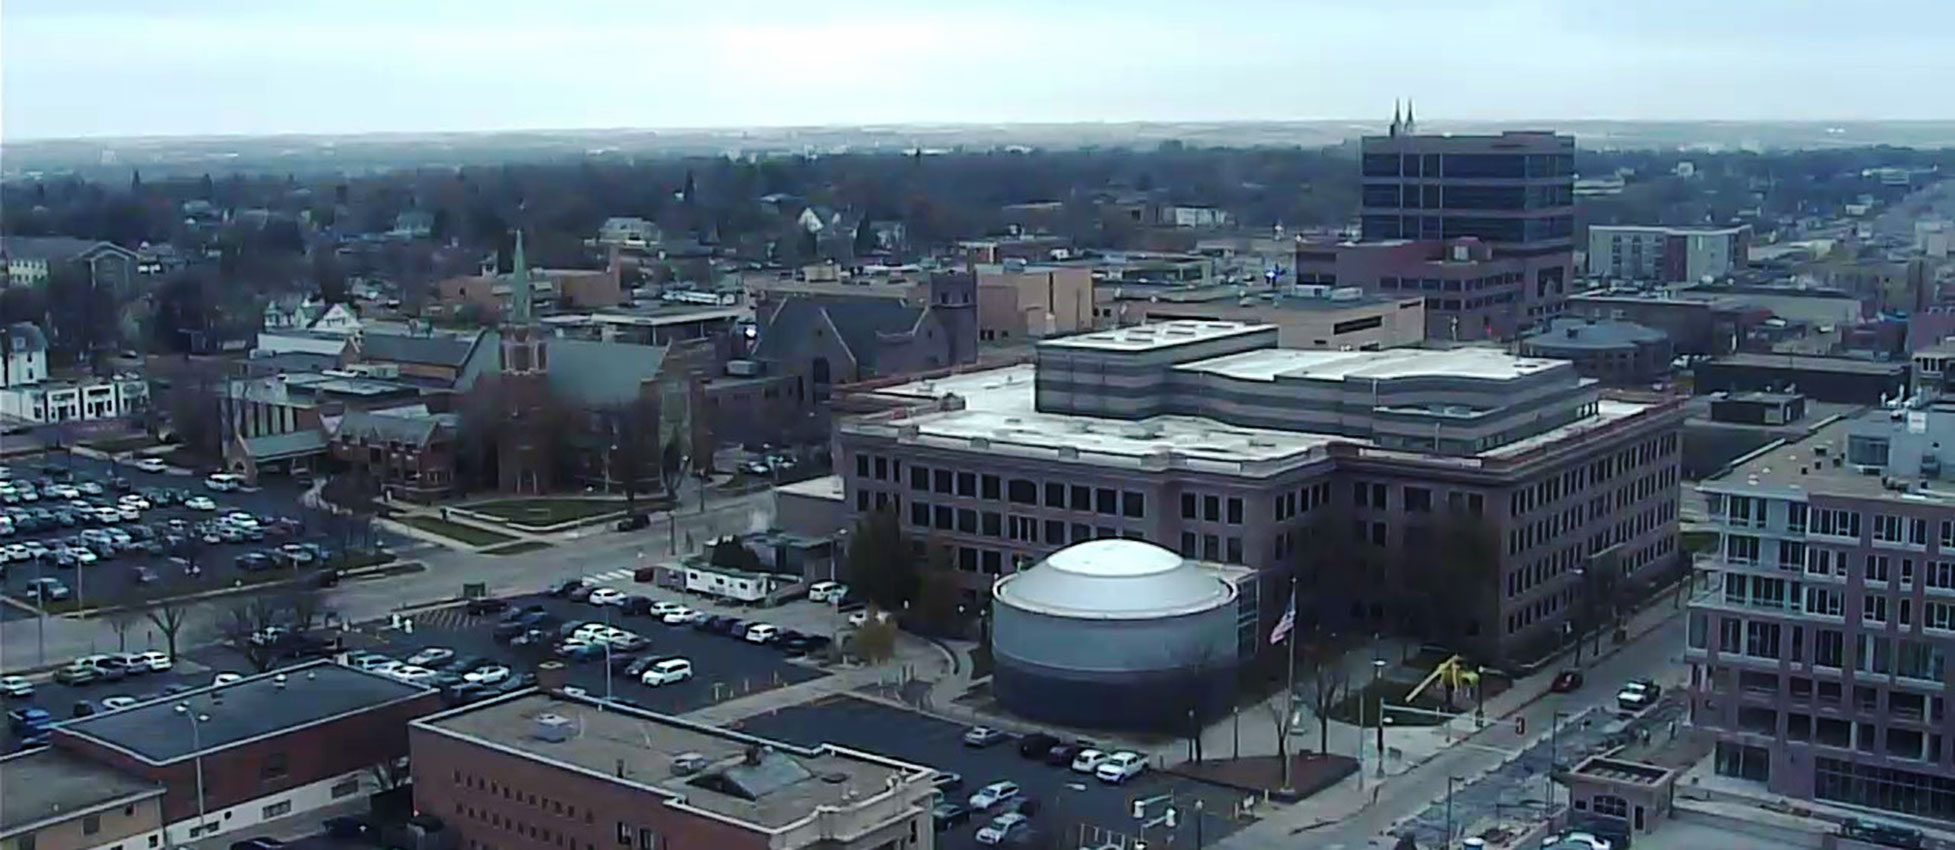 downtown Sioux Falls skyline skycam